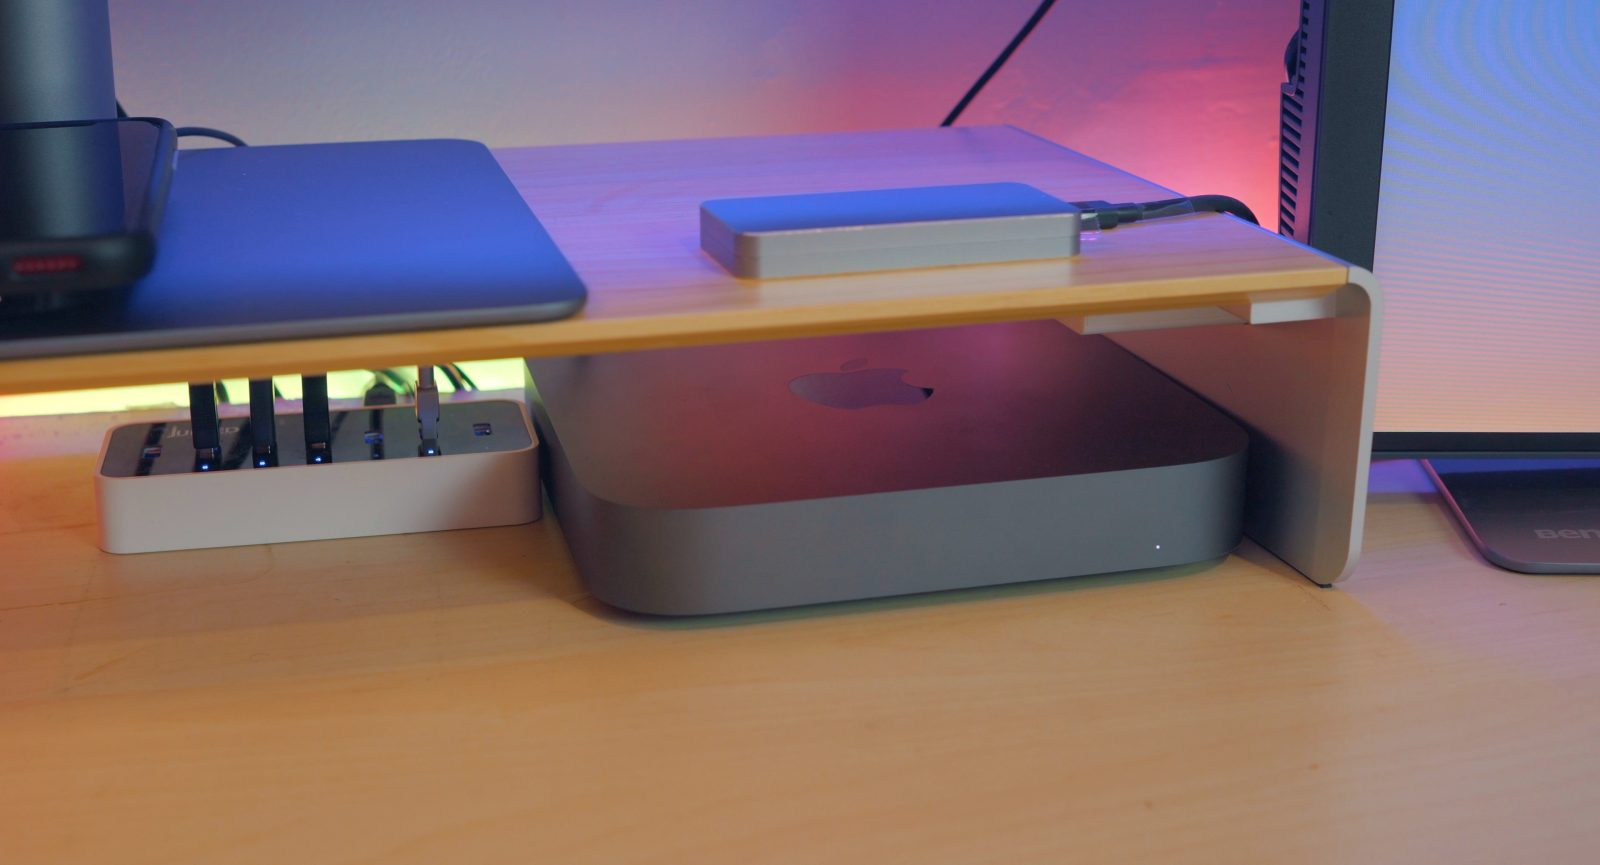 Creating a Mac mini video editing setup for under $2,000 [Video]